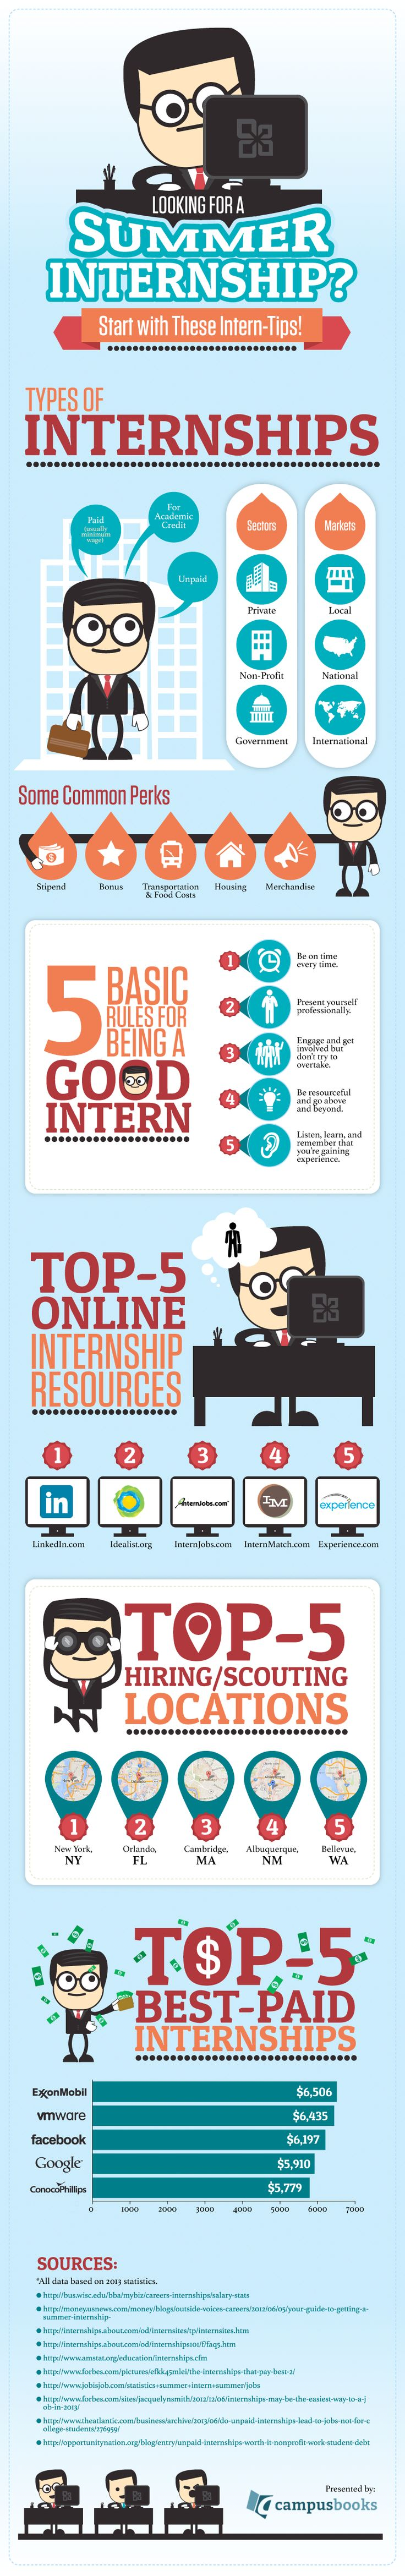 best images about internship ins outs the student s guide to summer internships infographic presents the types of summer internships how to be a good intern and what to expect in terms of